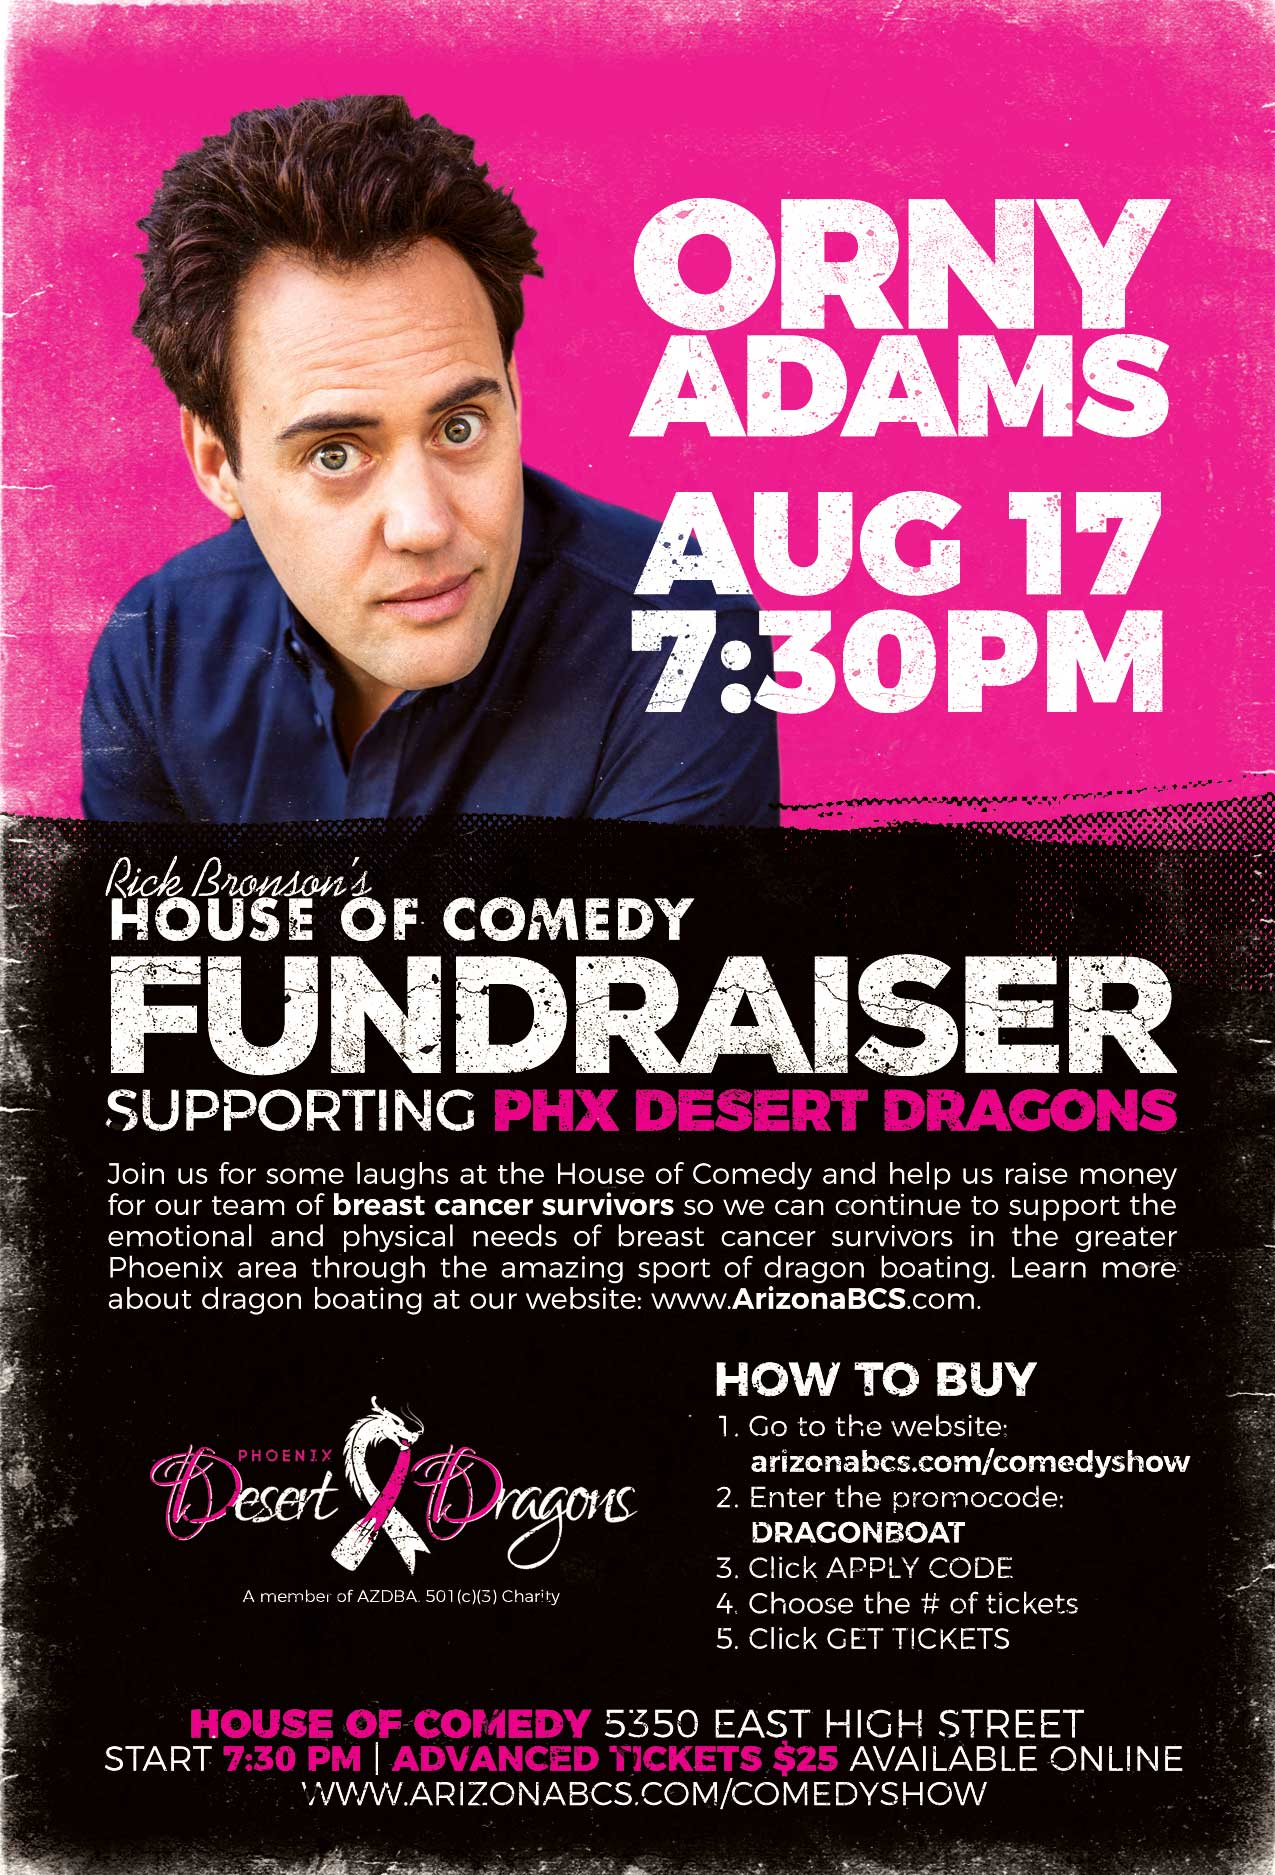 Fundraiser Orny Adams House of Comedy